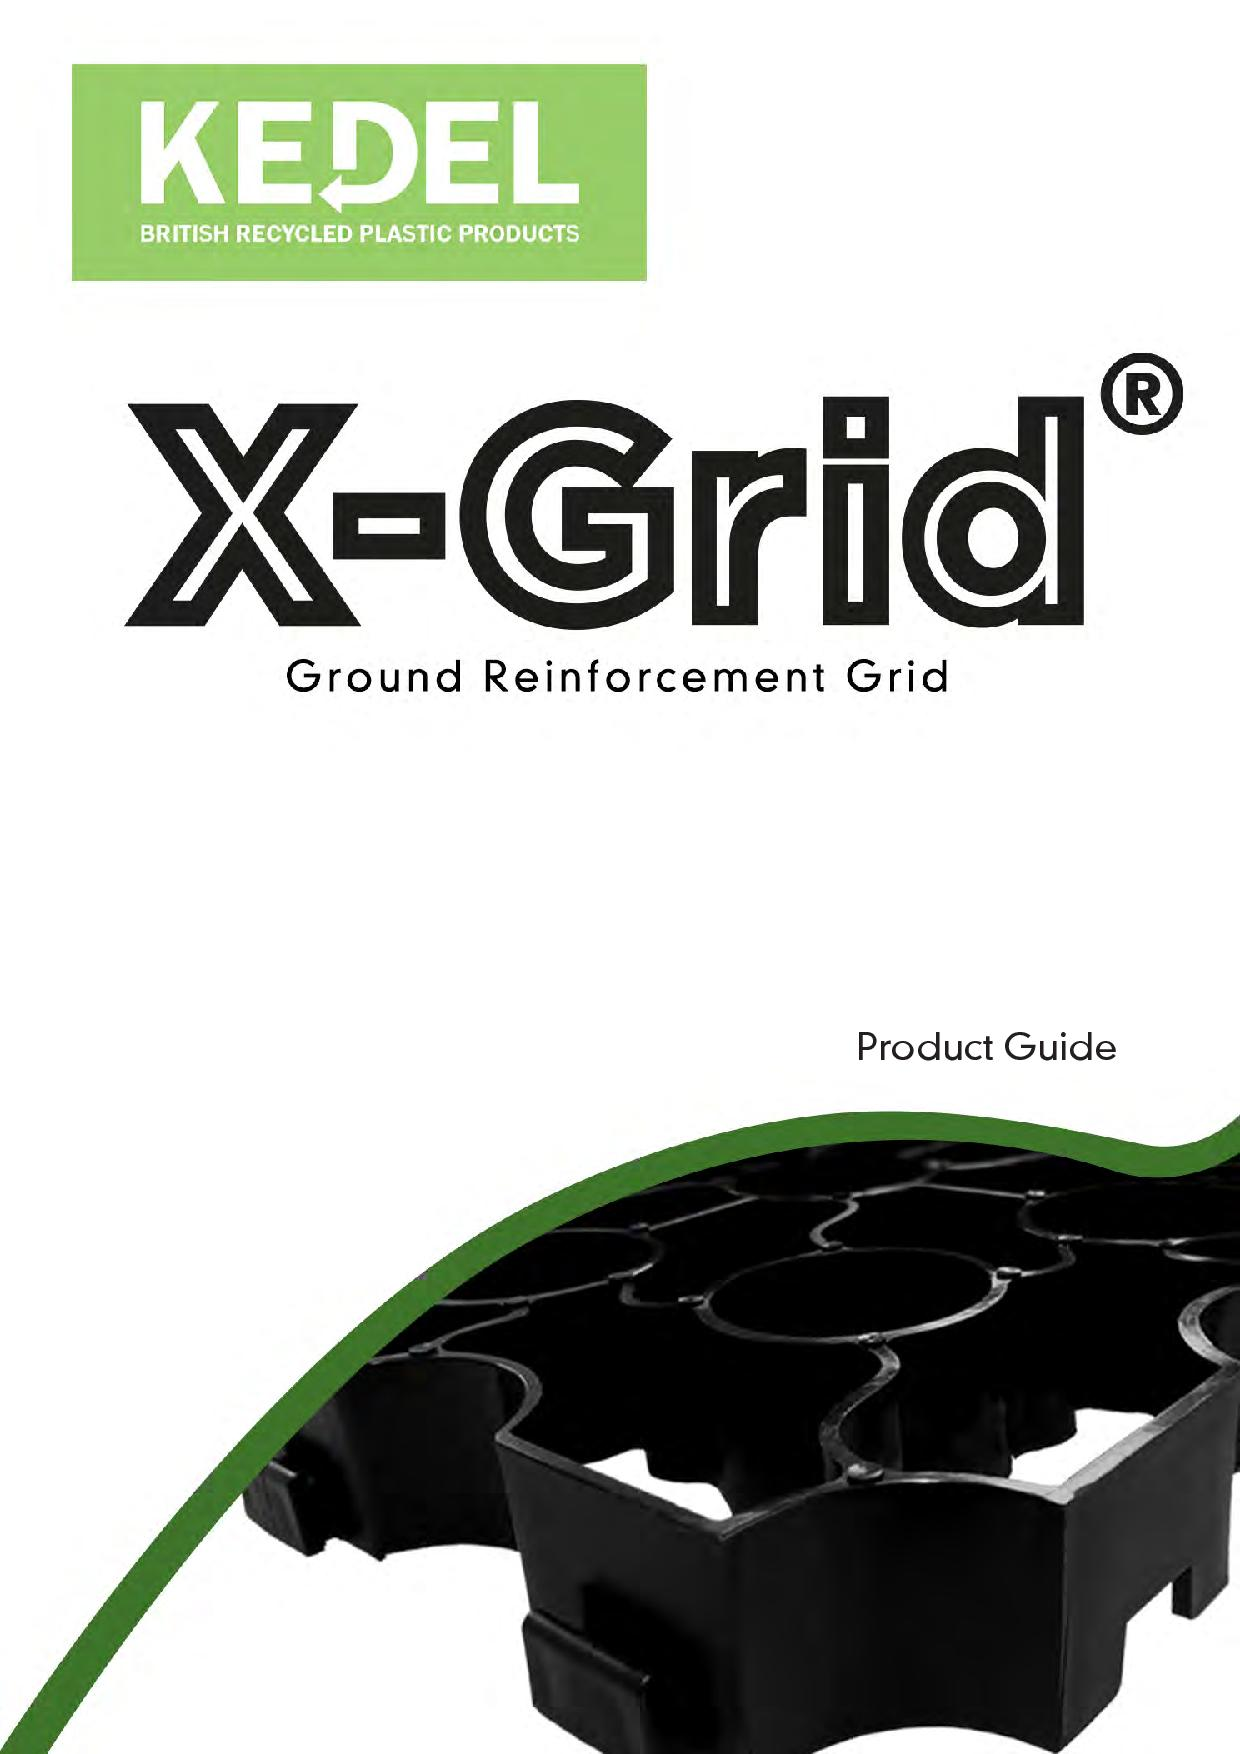 Kedel X Grid - Product Guide